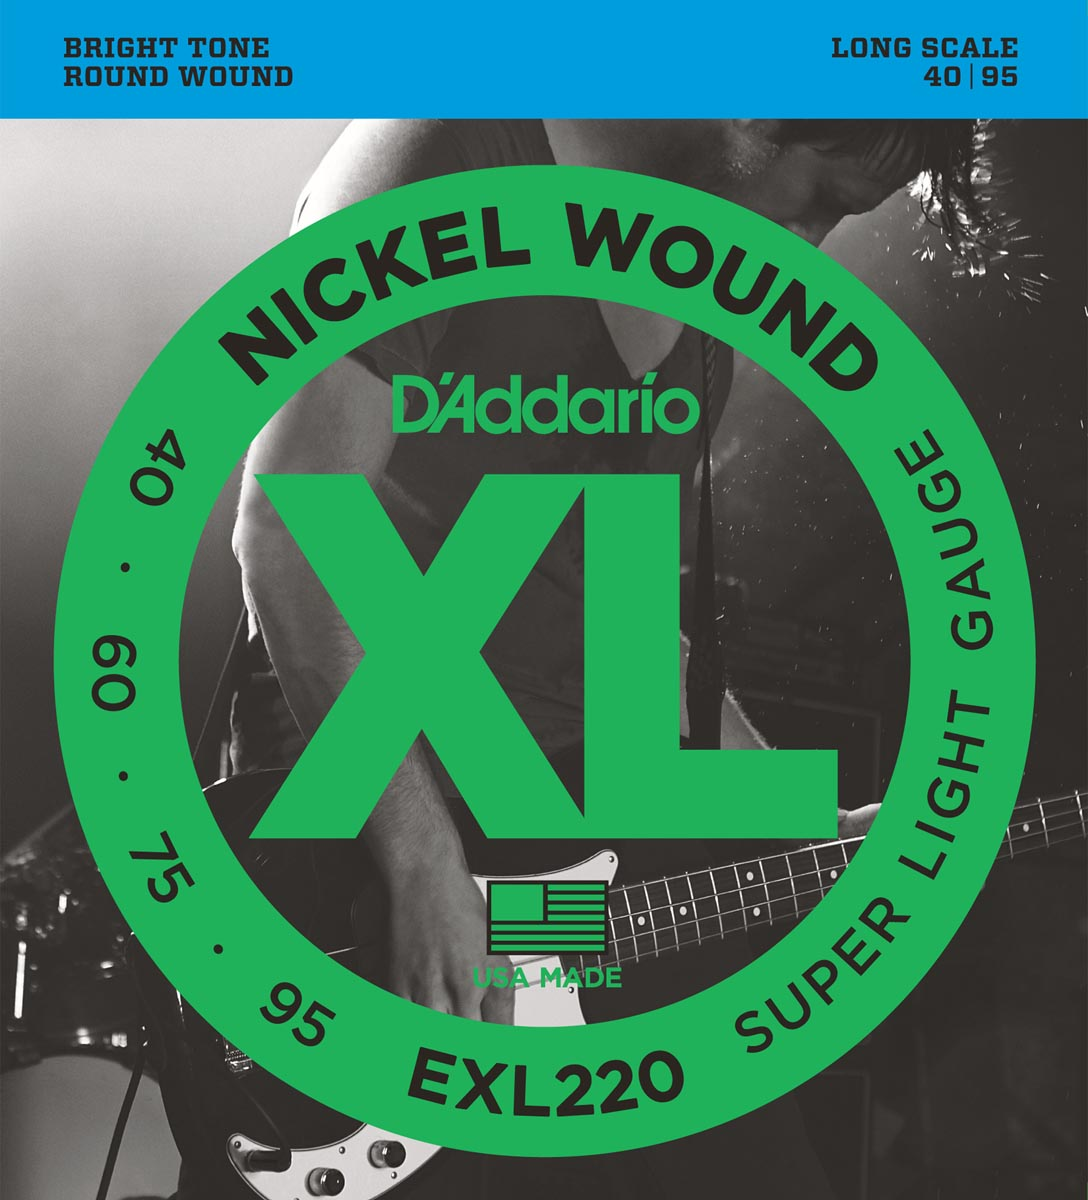 DADDARIO EXL220 XL NICKEL WOUND SUPER LIGHT [40-95]